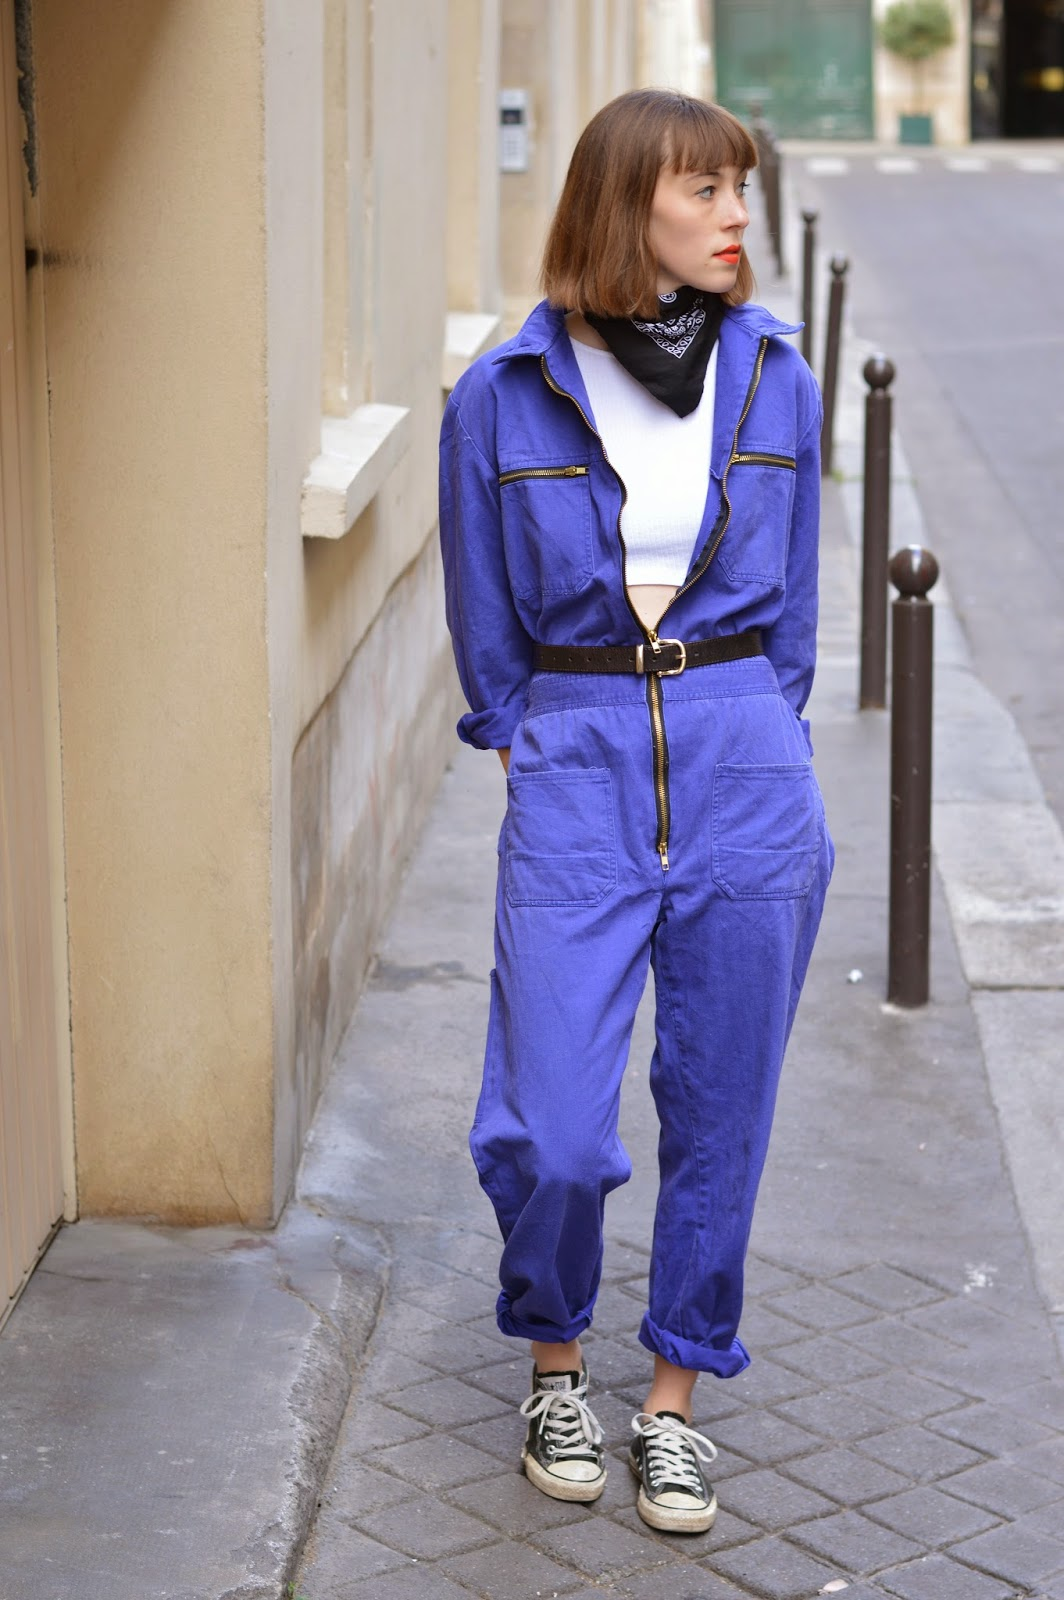 Blue boiler suit worn unzipped open with white topshop crop top, belt and bandana